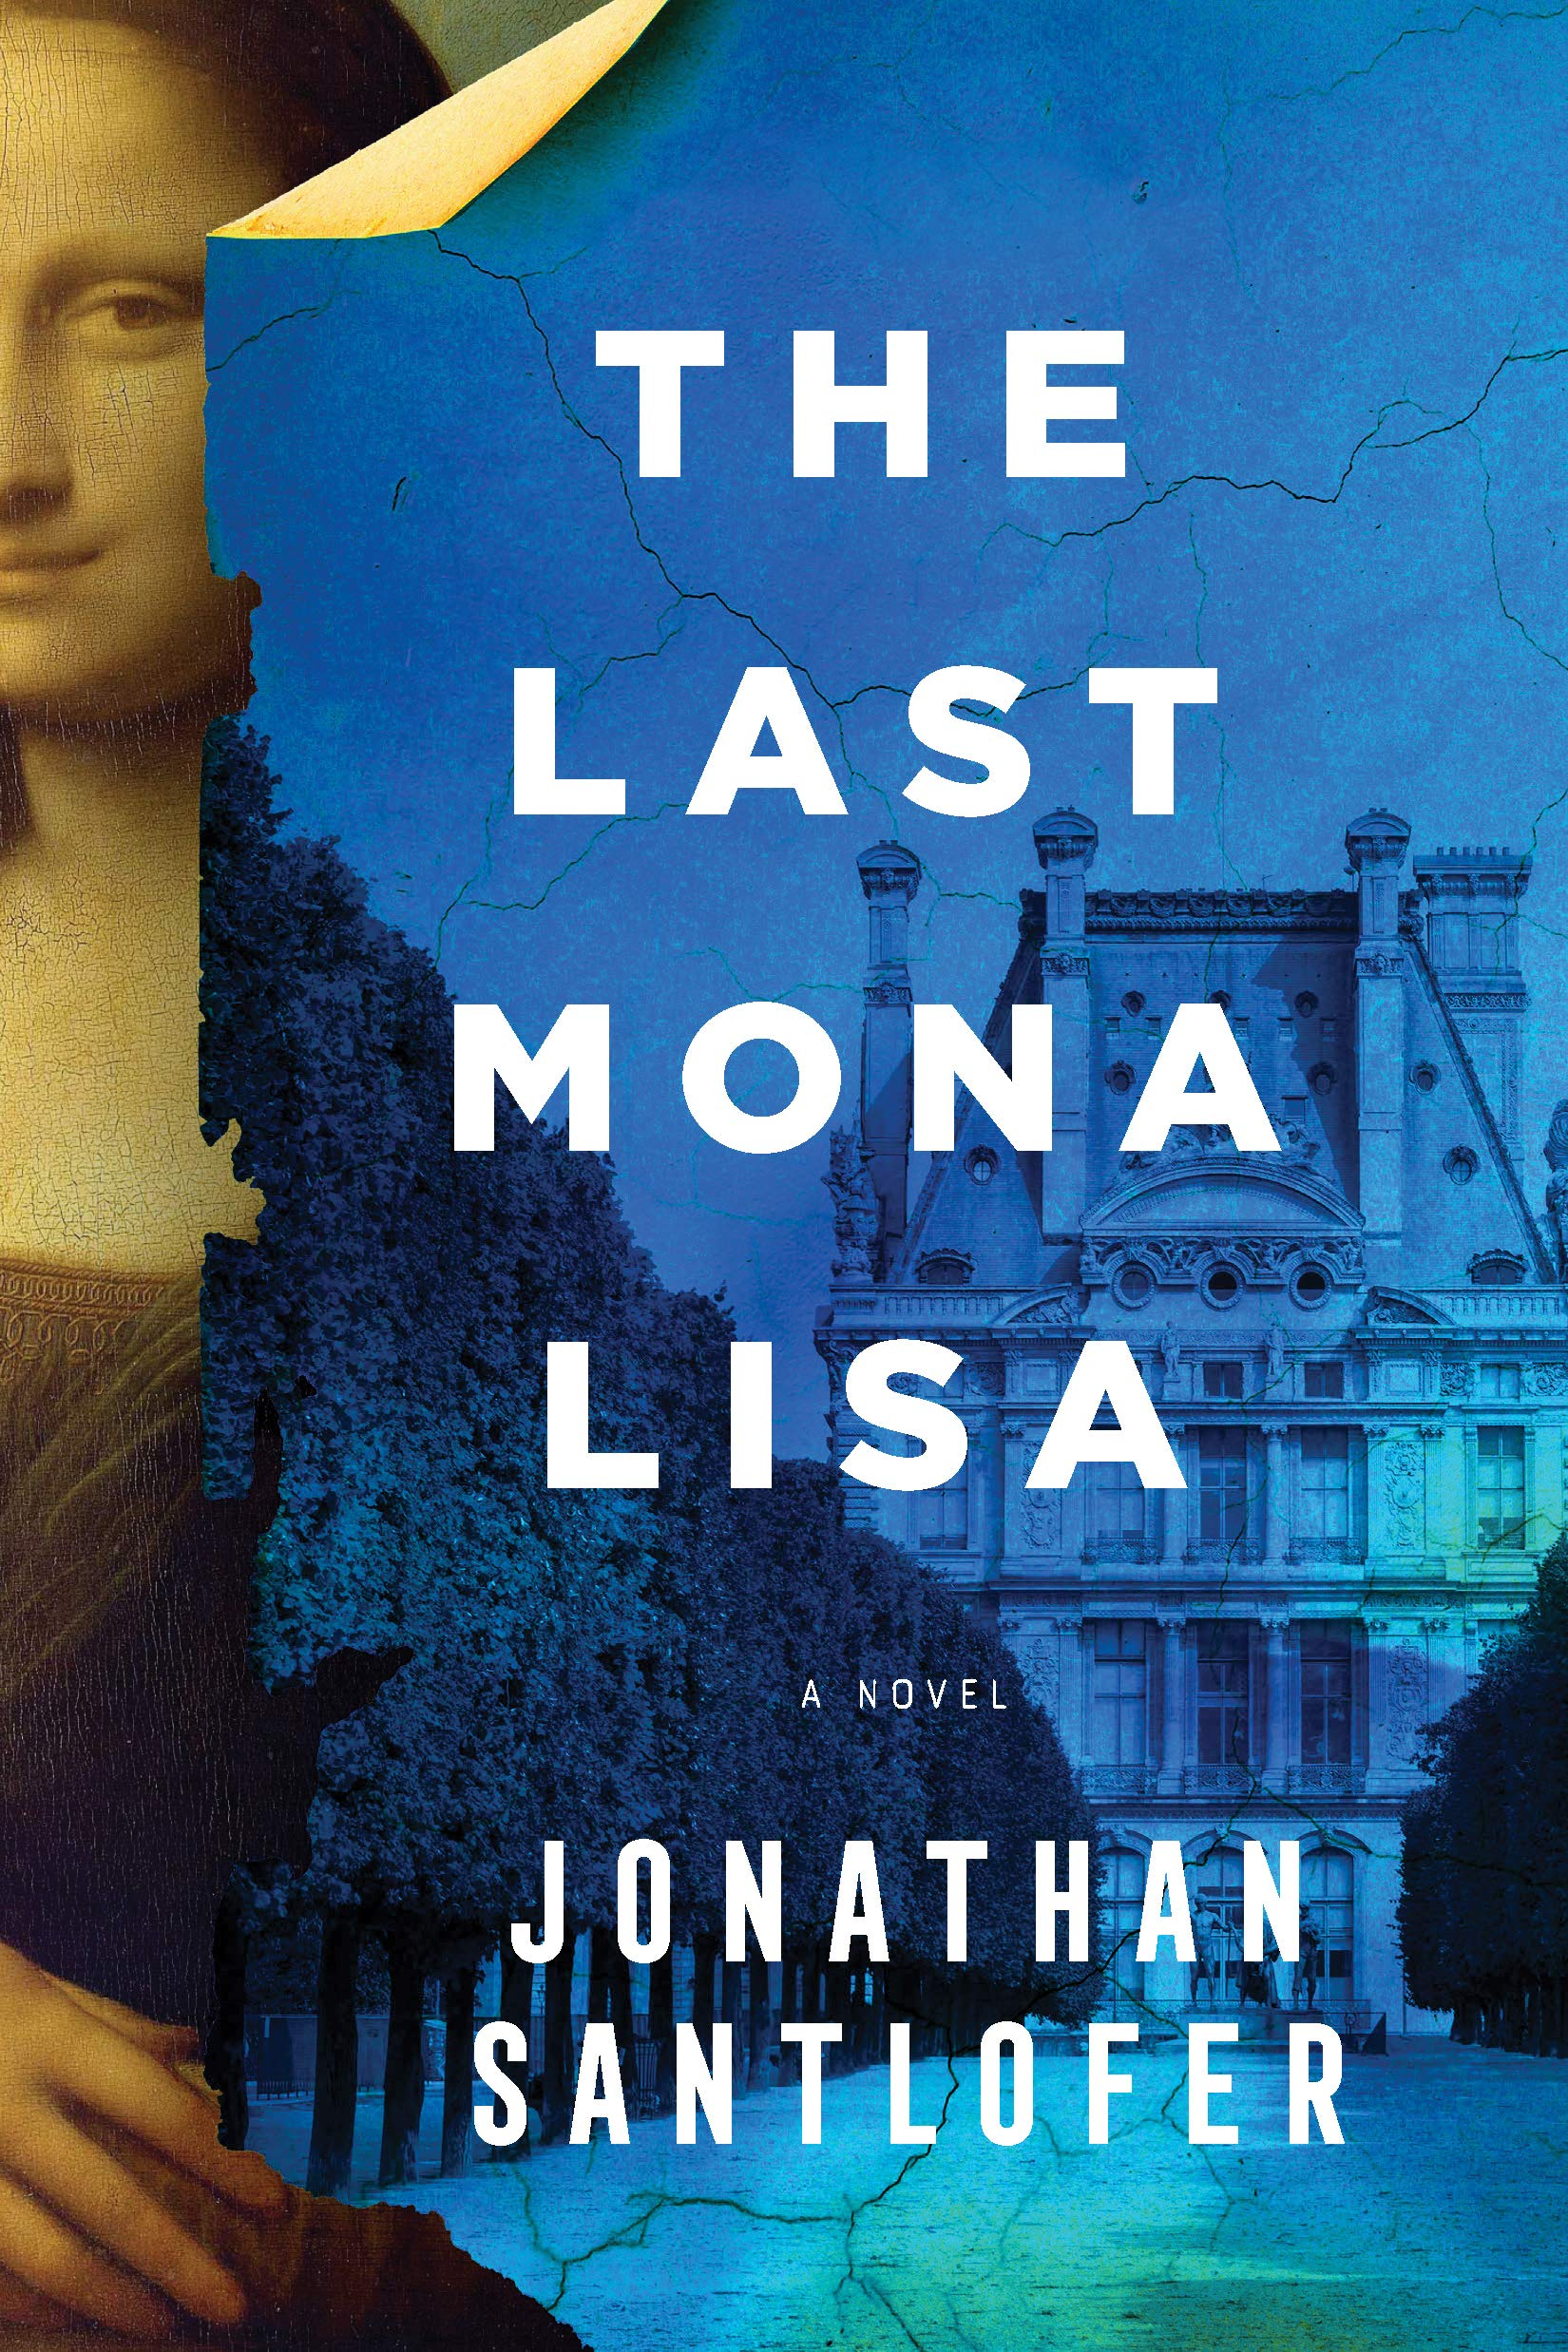 When Does The Last Mona Lisa Release? Jonathan Santlofer 2021 New Releases